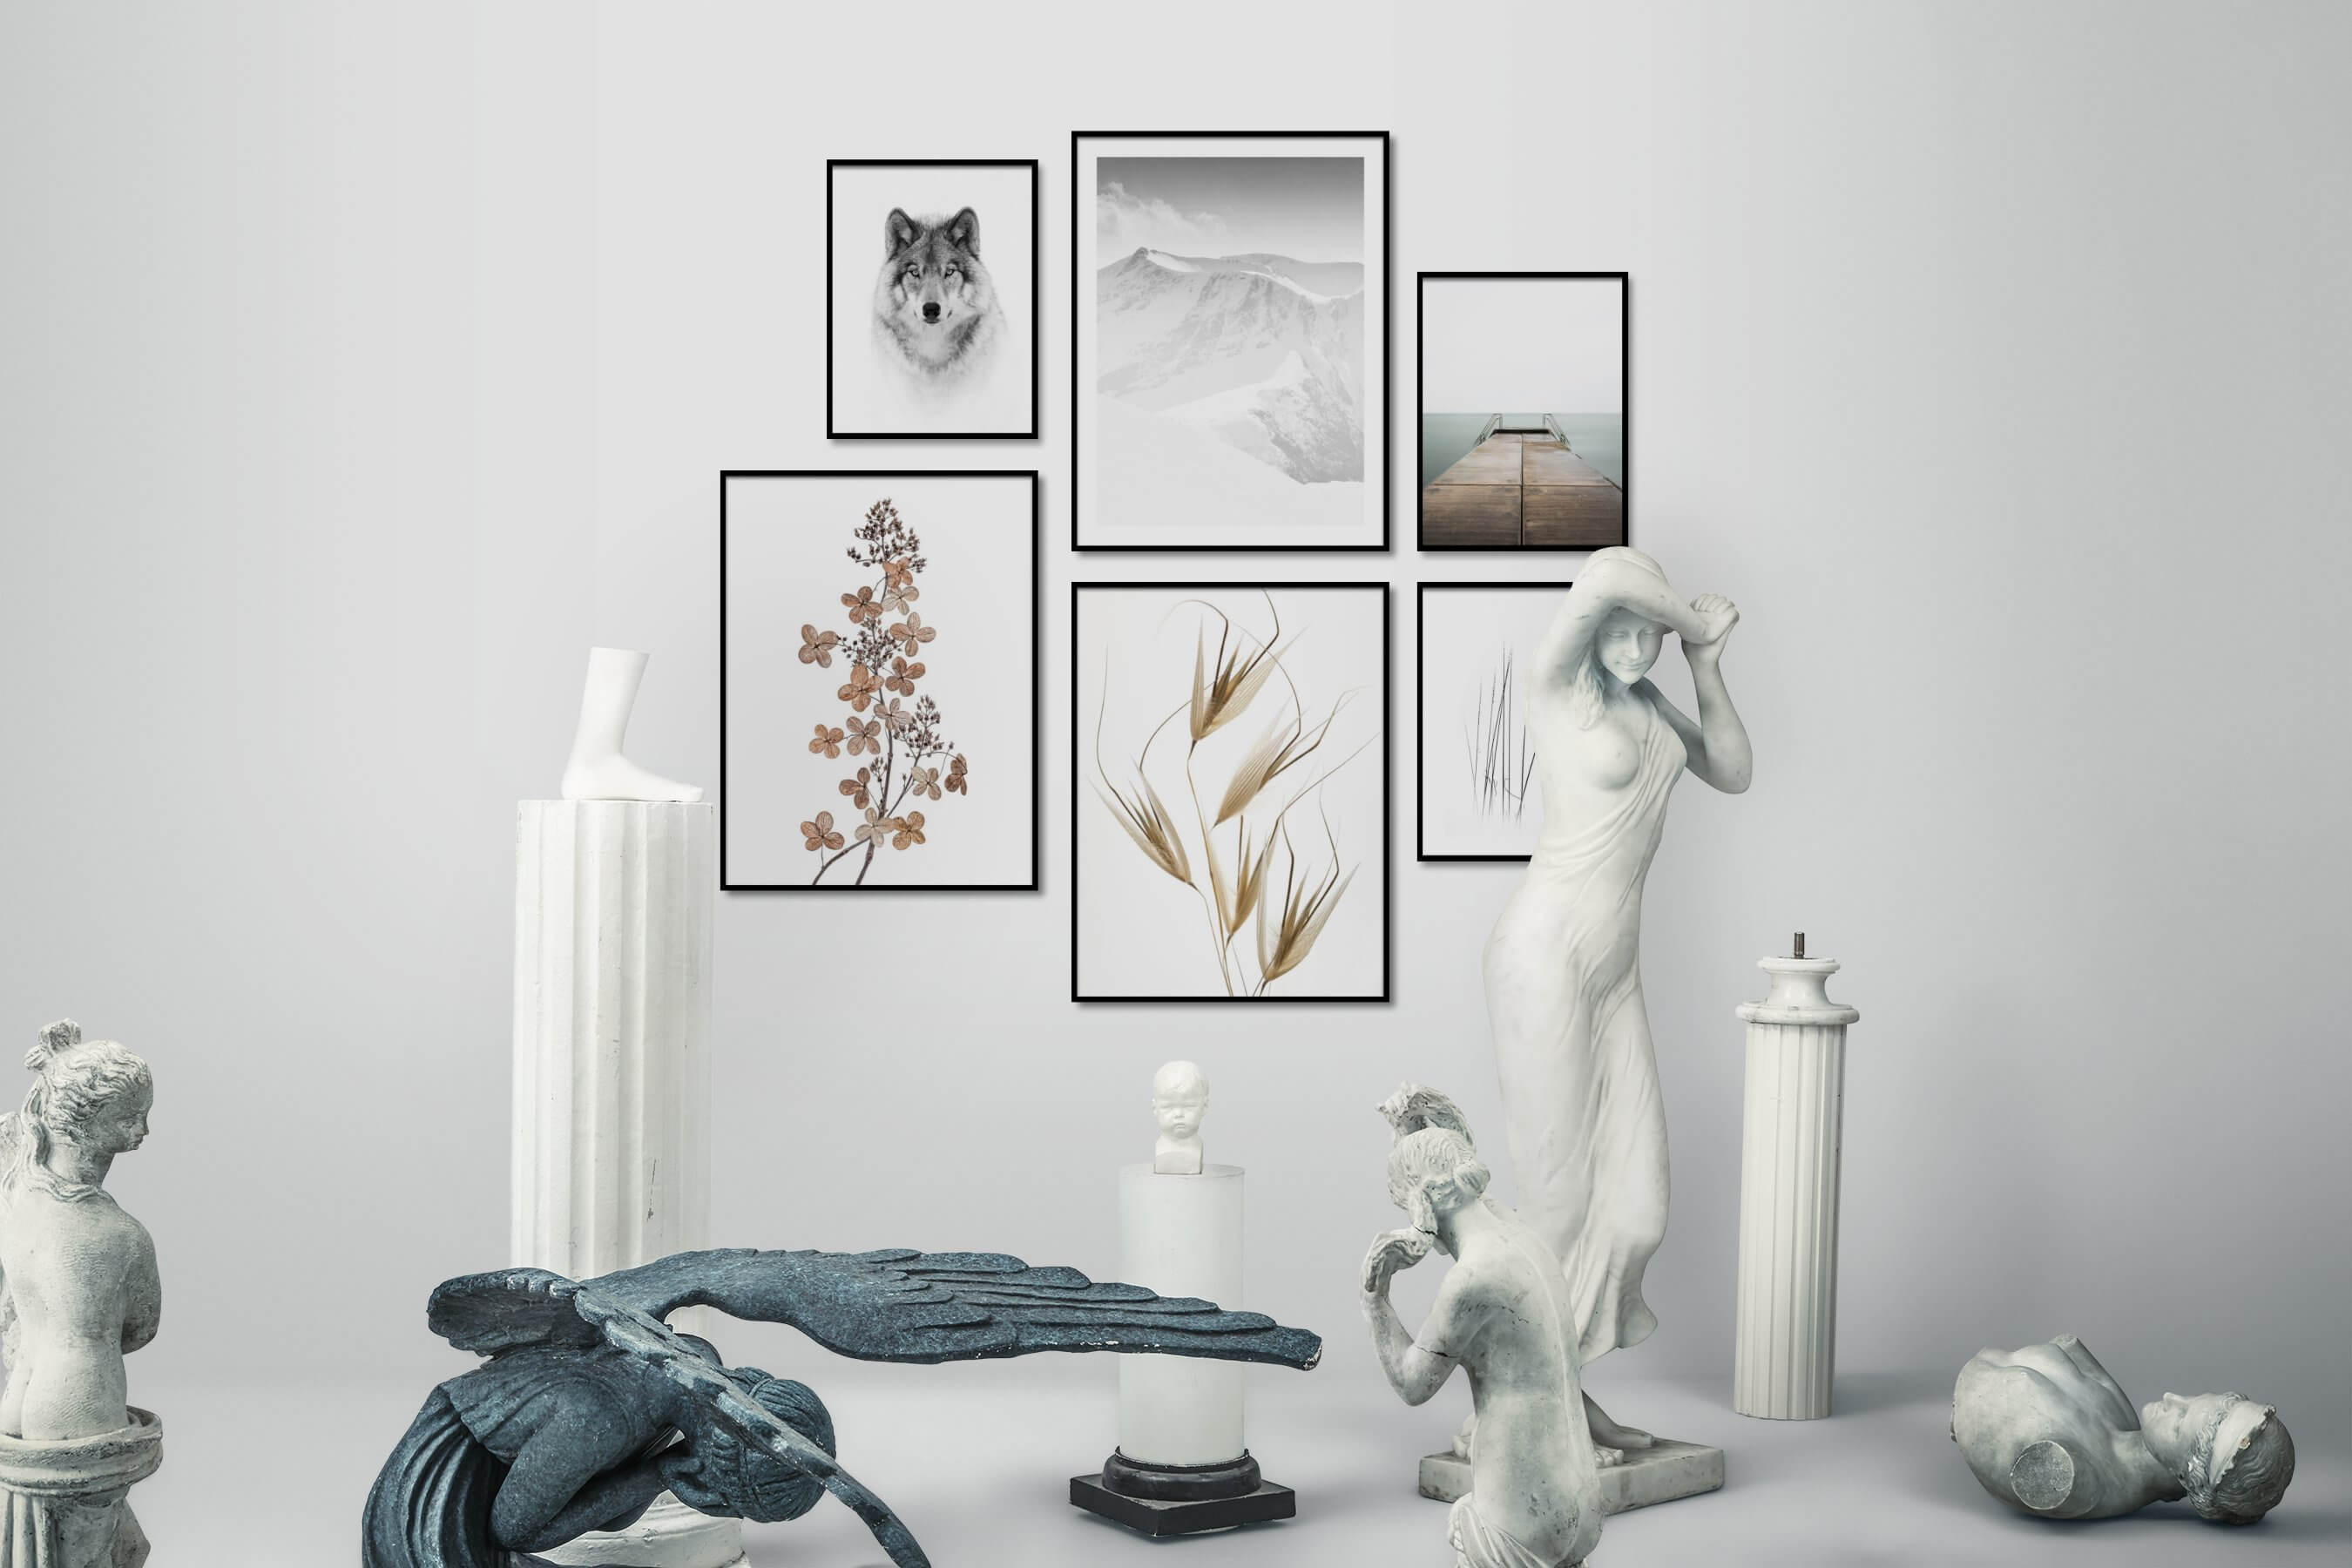 Gallery wall idea with six framed pictures arranged on a wall depicting Black & White, Bright Tones, For the Minimalist, Animals, Nature, Flowers & Plants, Mindfulness, and Beach & Water